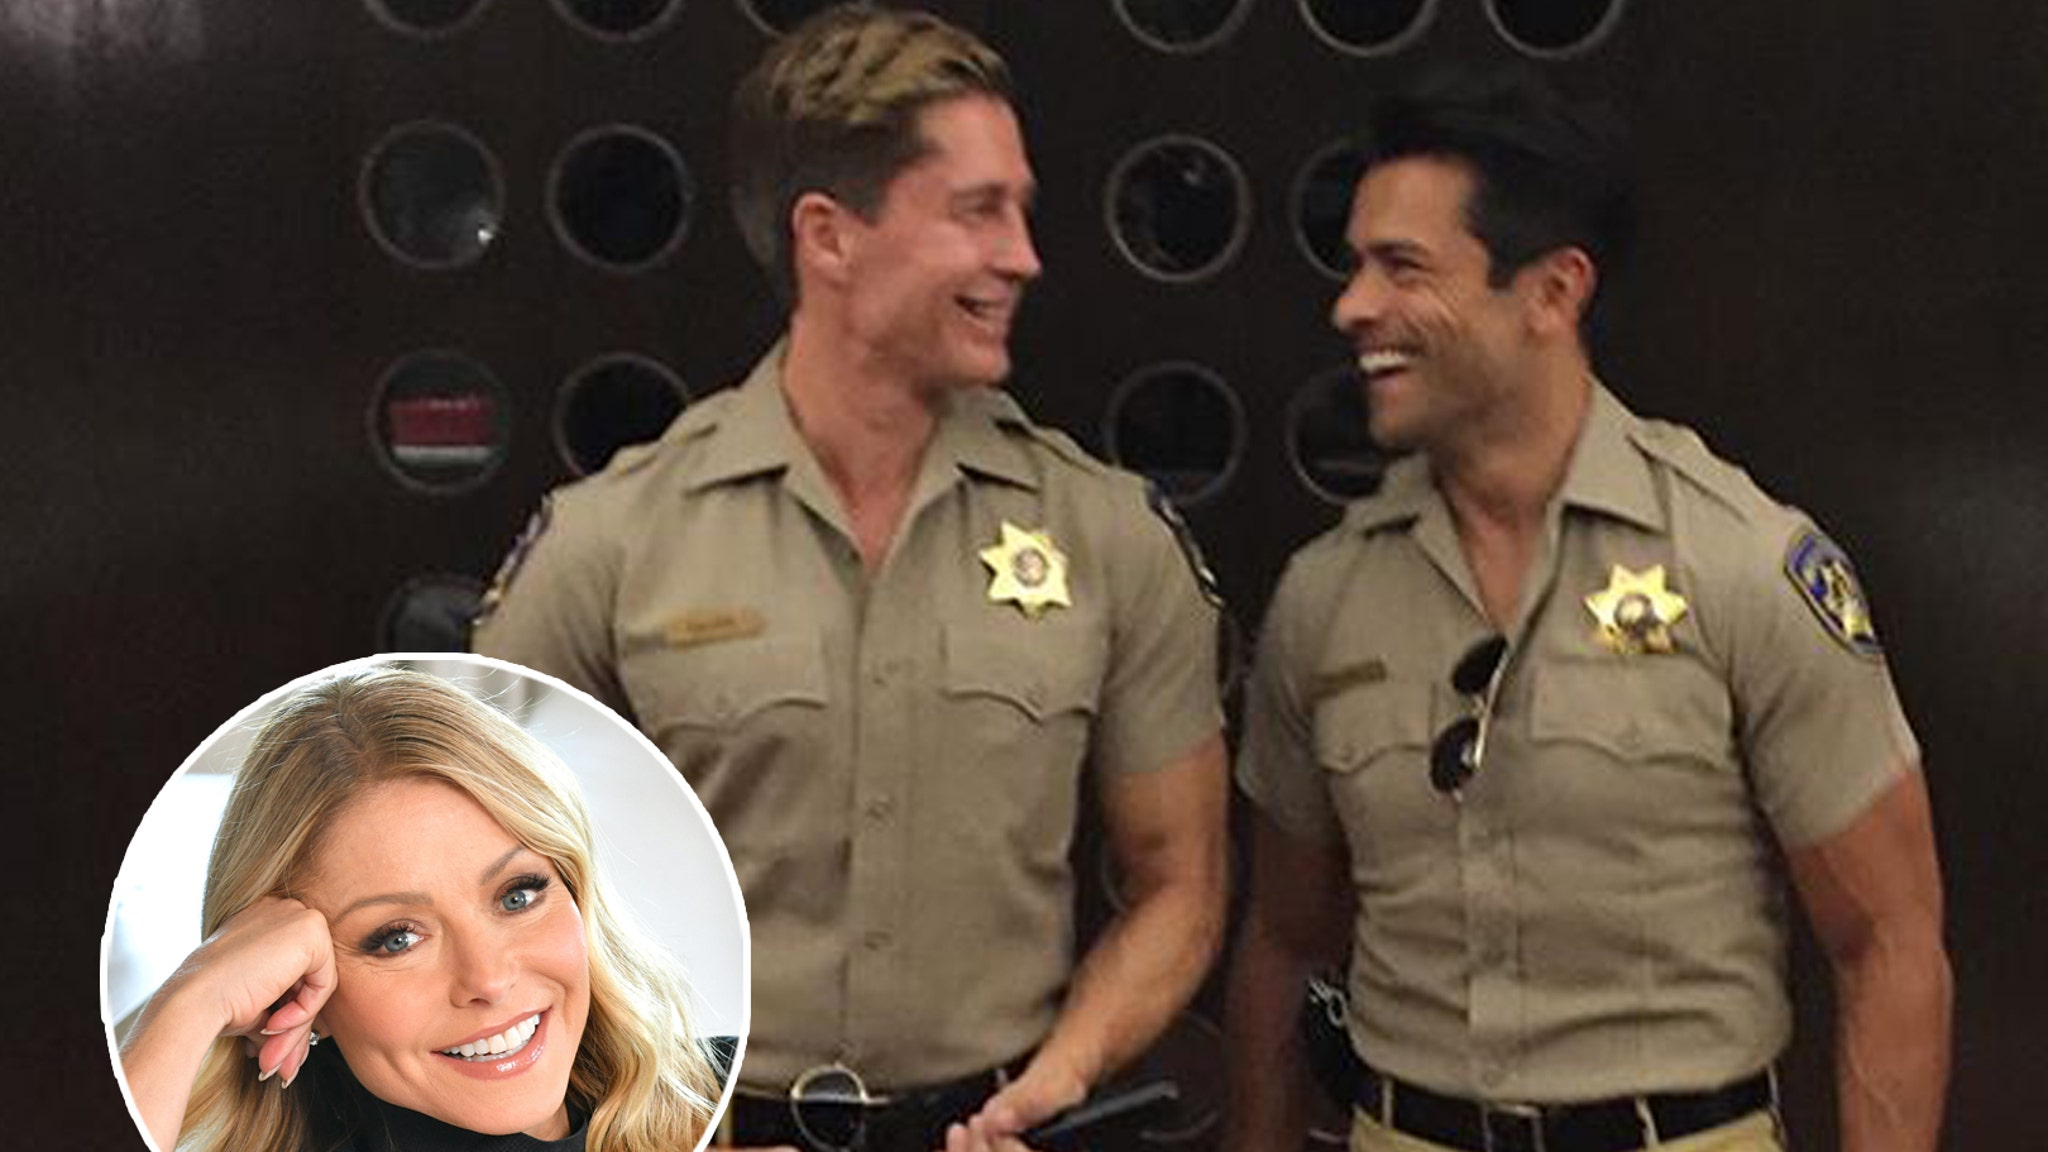 Kelly Ripa Addresses Mark Consuelos' Bulge After Fans Share NSFW Comments – TooFab